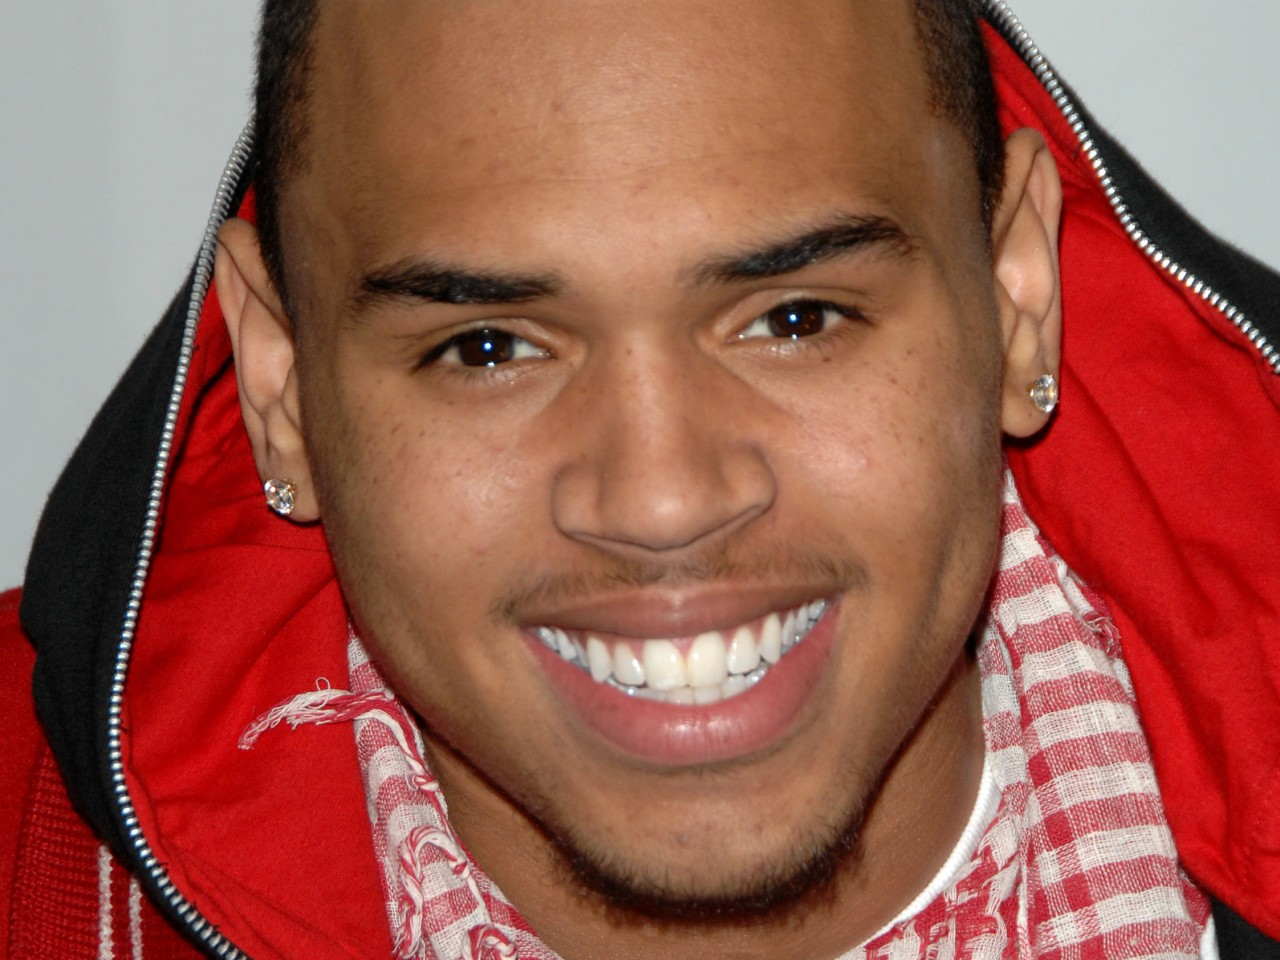 Chris Brown says porn, divorce and domestic violence